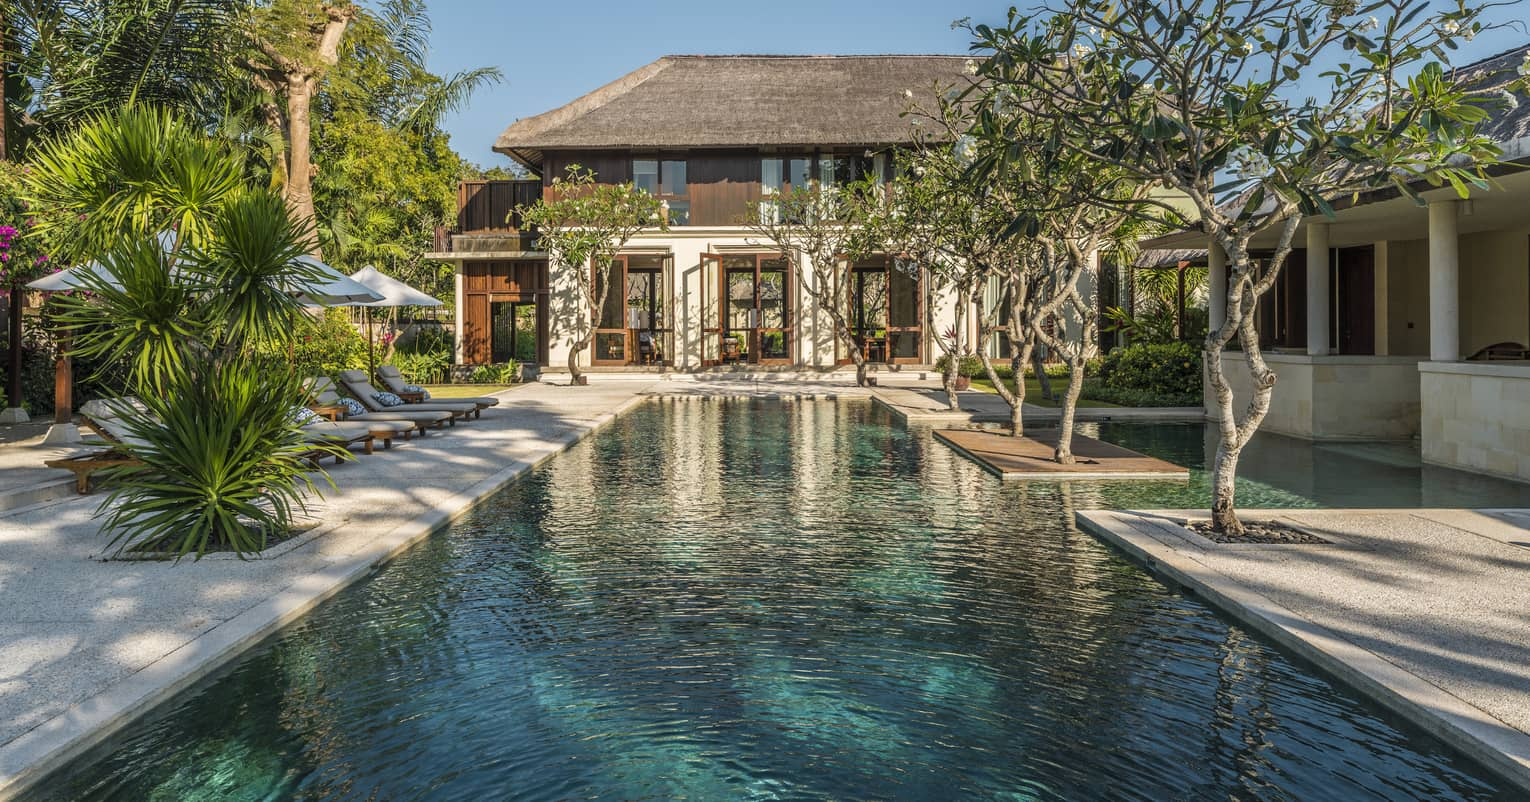 Two-storey villa at end of long outdoor swimming pool lined with trees, tropical plants